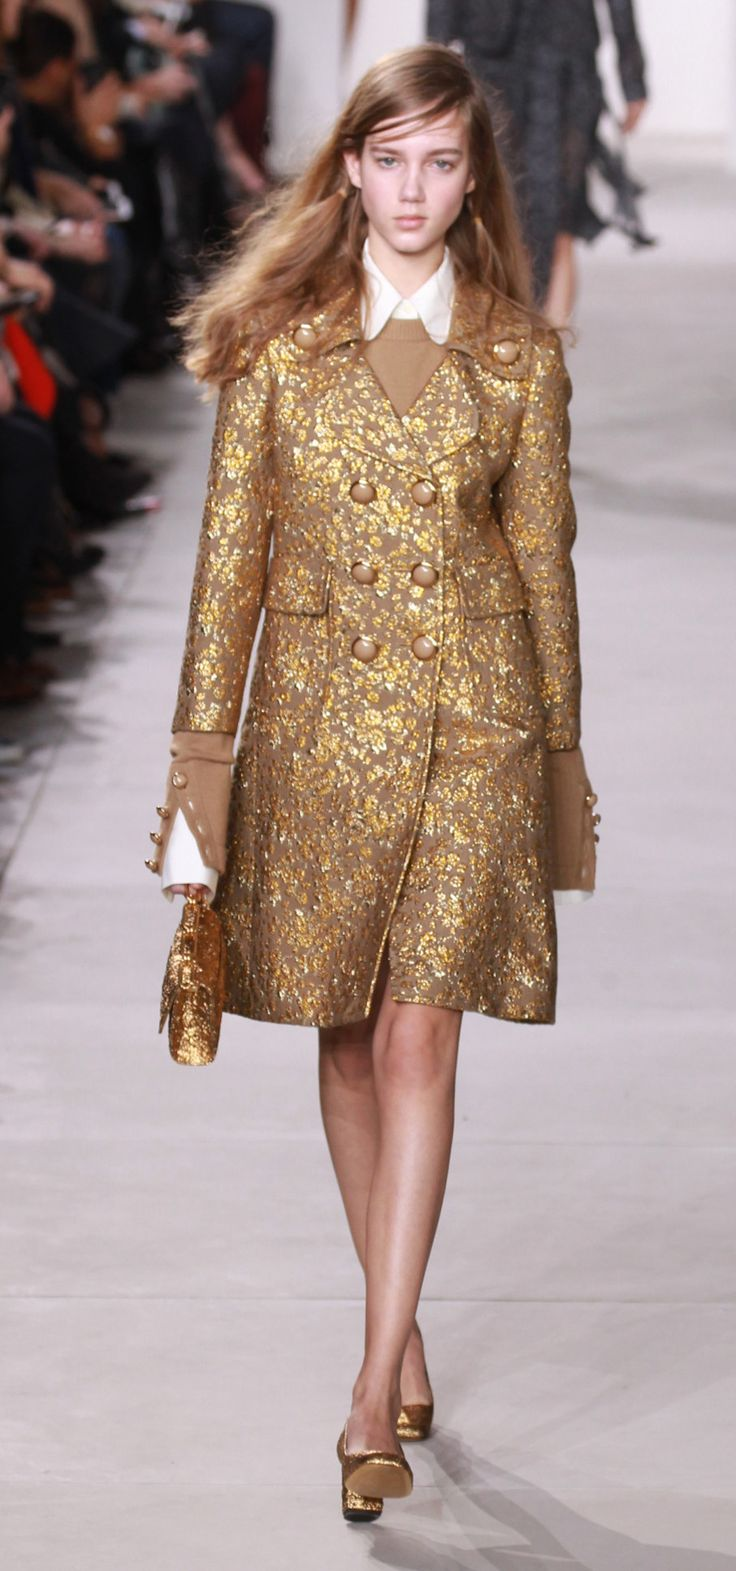 Michael Kors gold brocade dress NYFW 2016-2017